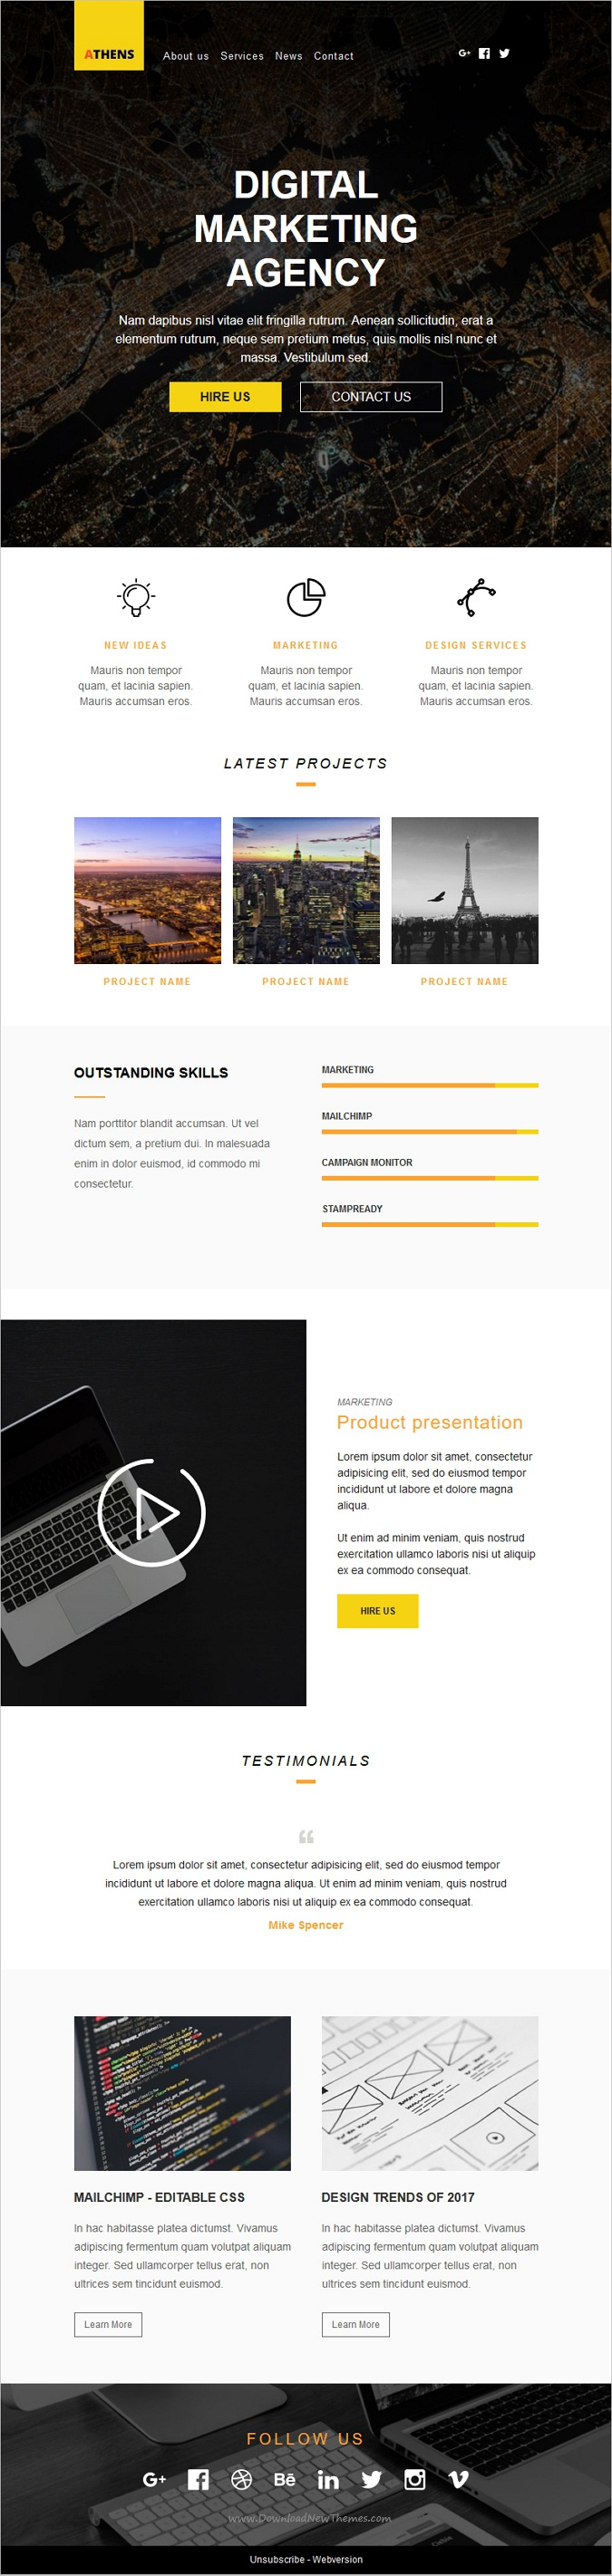 Athens Is A Wonderful Responsive Newsletter Email Template For